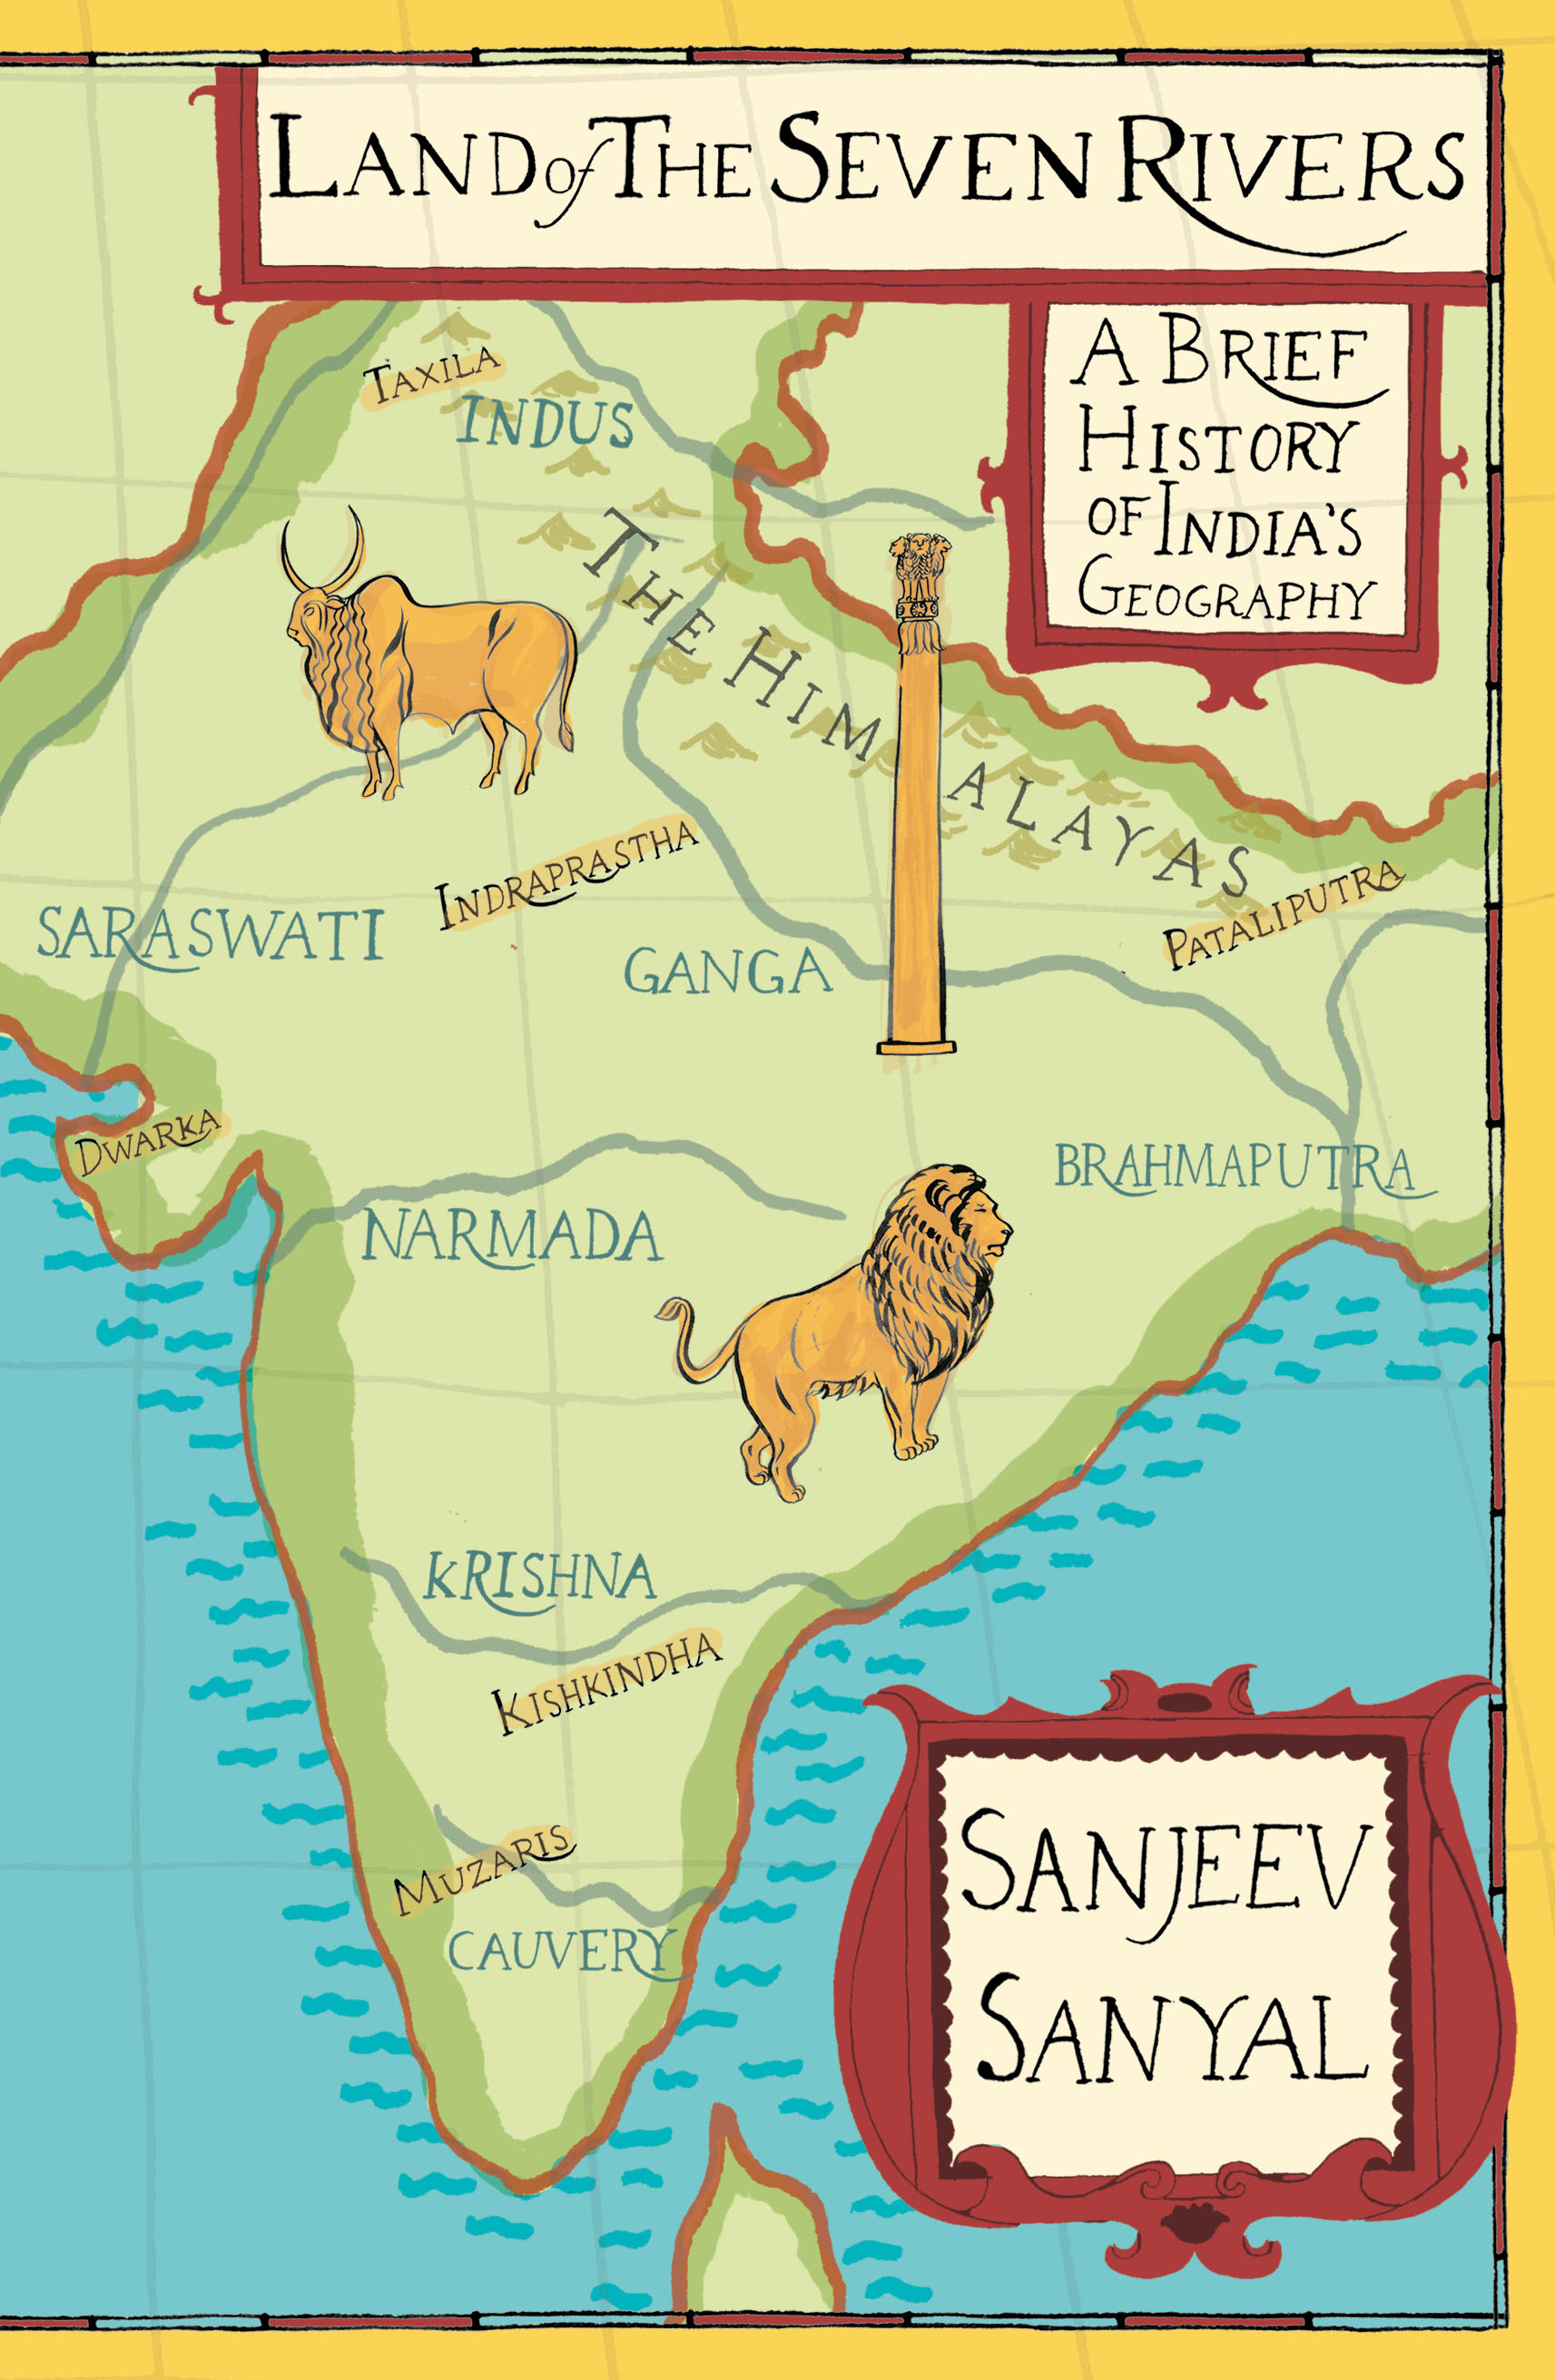 Land of the Seven Rivers by Sanjeev Sanyal